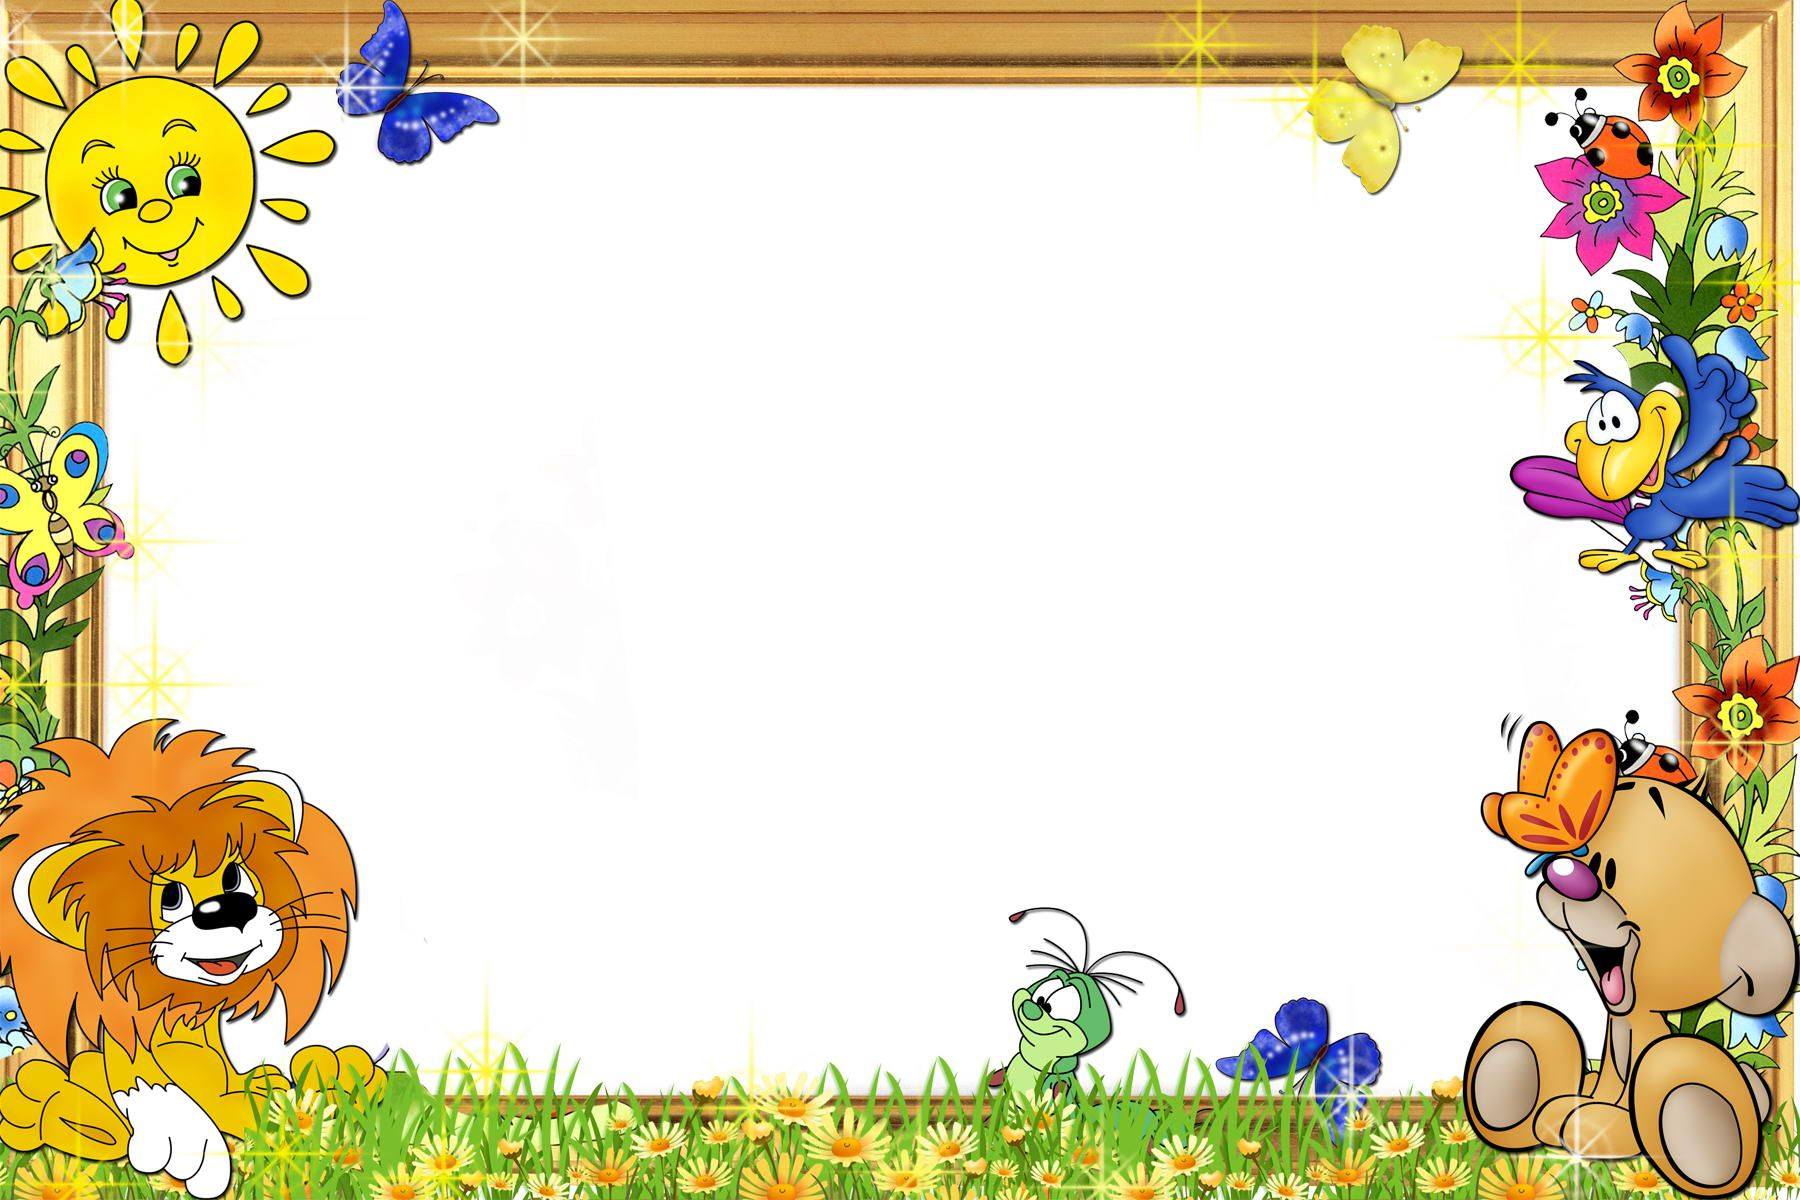 all disney cartoons photo frame for kids hd wallpaper - Pictures Of Cartoons For Kids